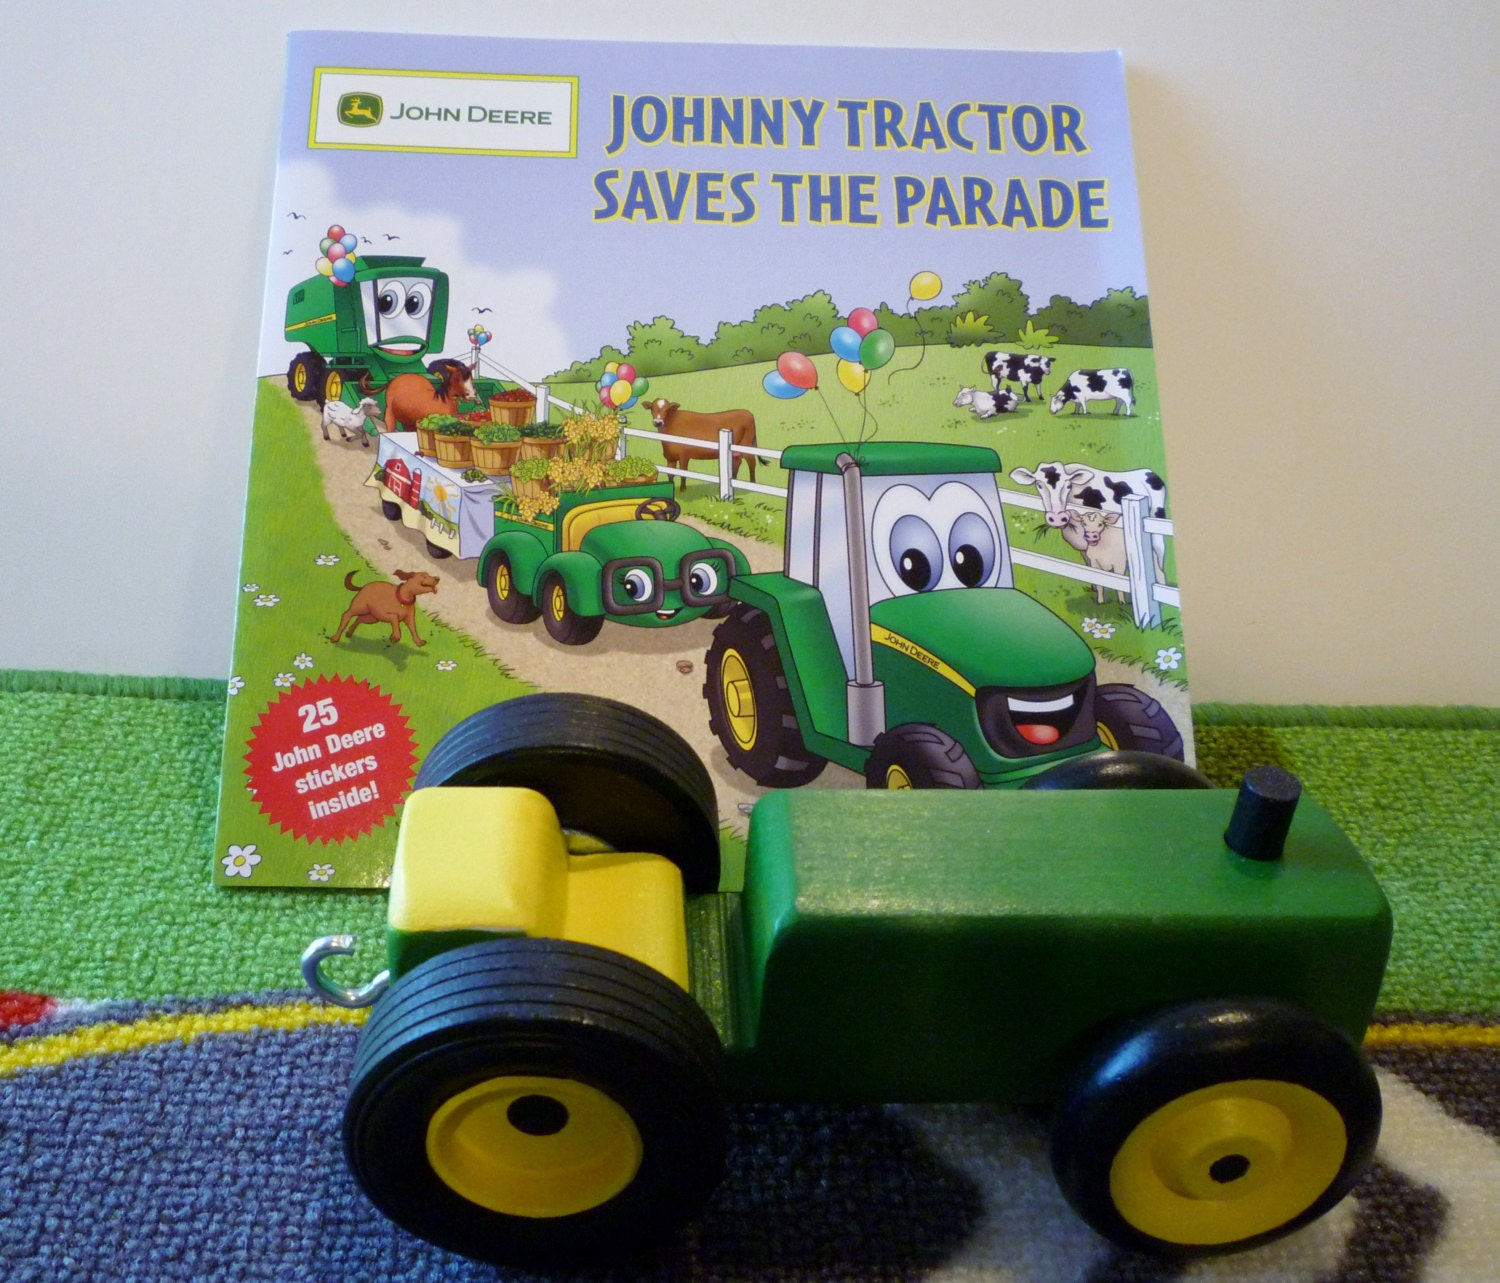 John Deere Tractor Cutouts : Toy tractor and book green yellow johnny